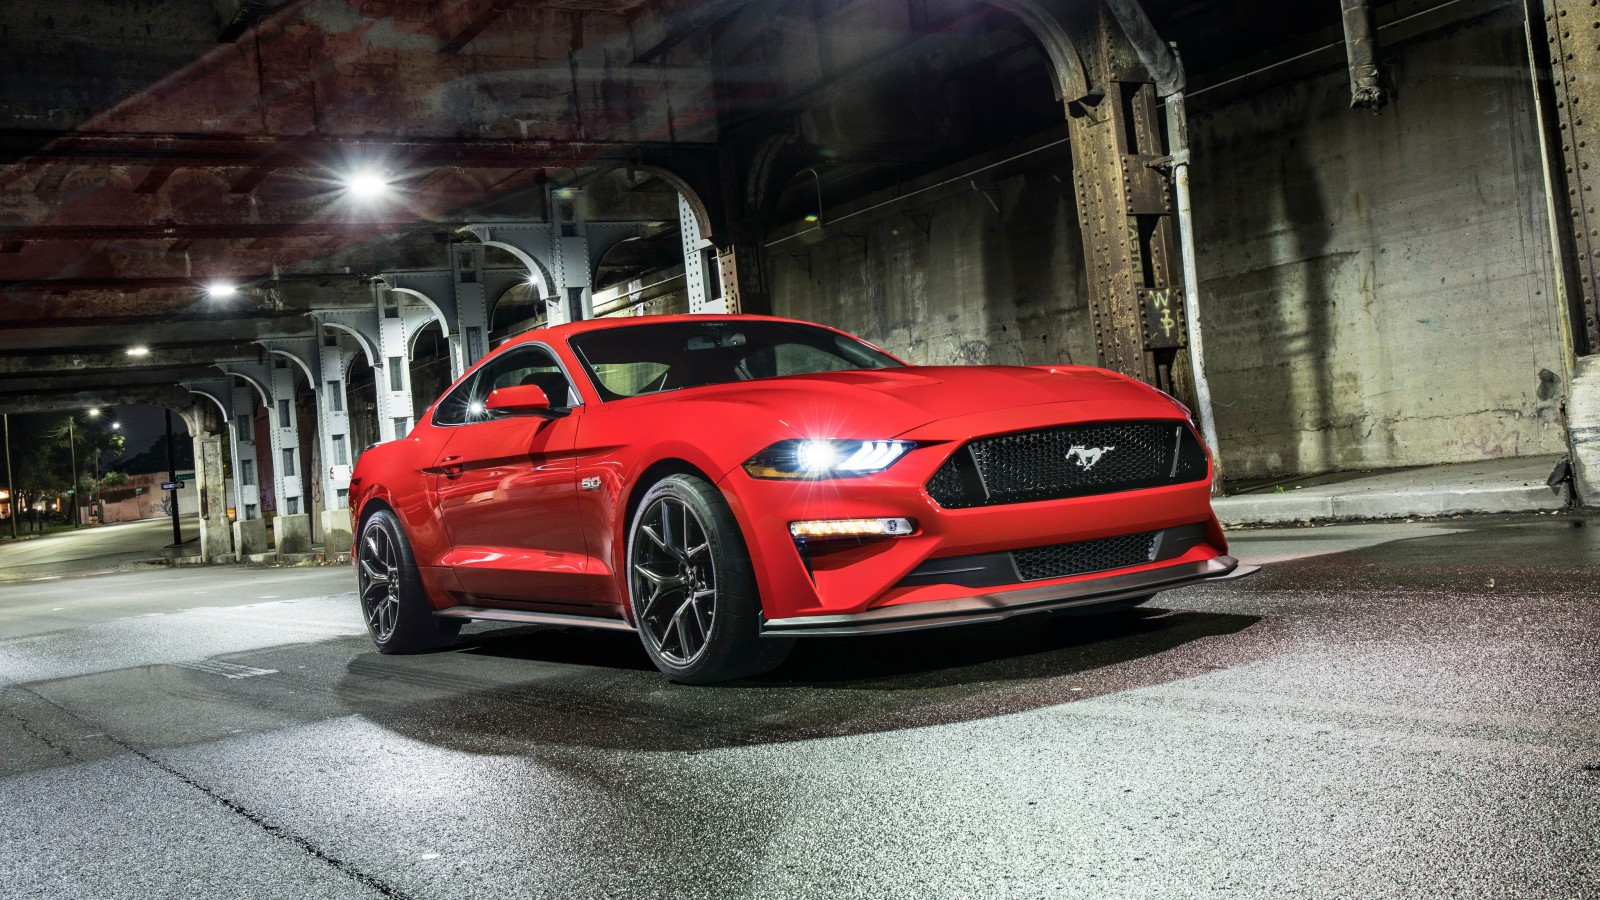 Ford Mustang Wallpaper besides 1979 Pontiac Trans Am 10th Anniversary Daytona Pace Car likewise Malaise Monday 810 1974 1978 Dodge Monaco in addition Haz Tu Personaje Favorito Haciendo PaperCraft further 1097704 aston Martin And Fisker Settle Things Amicably. on ford taurus muscle car